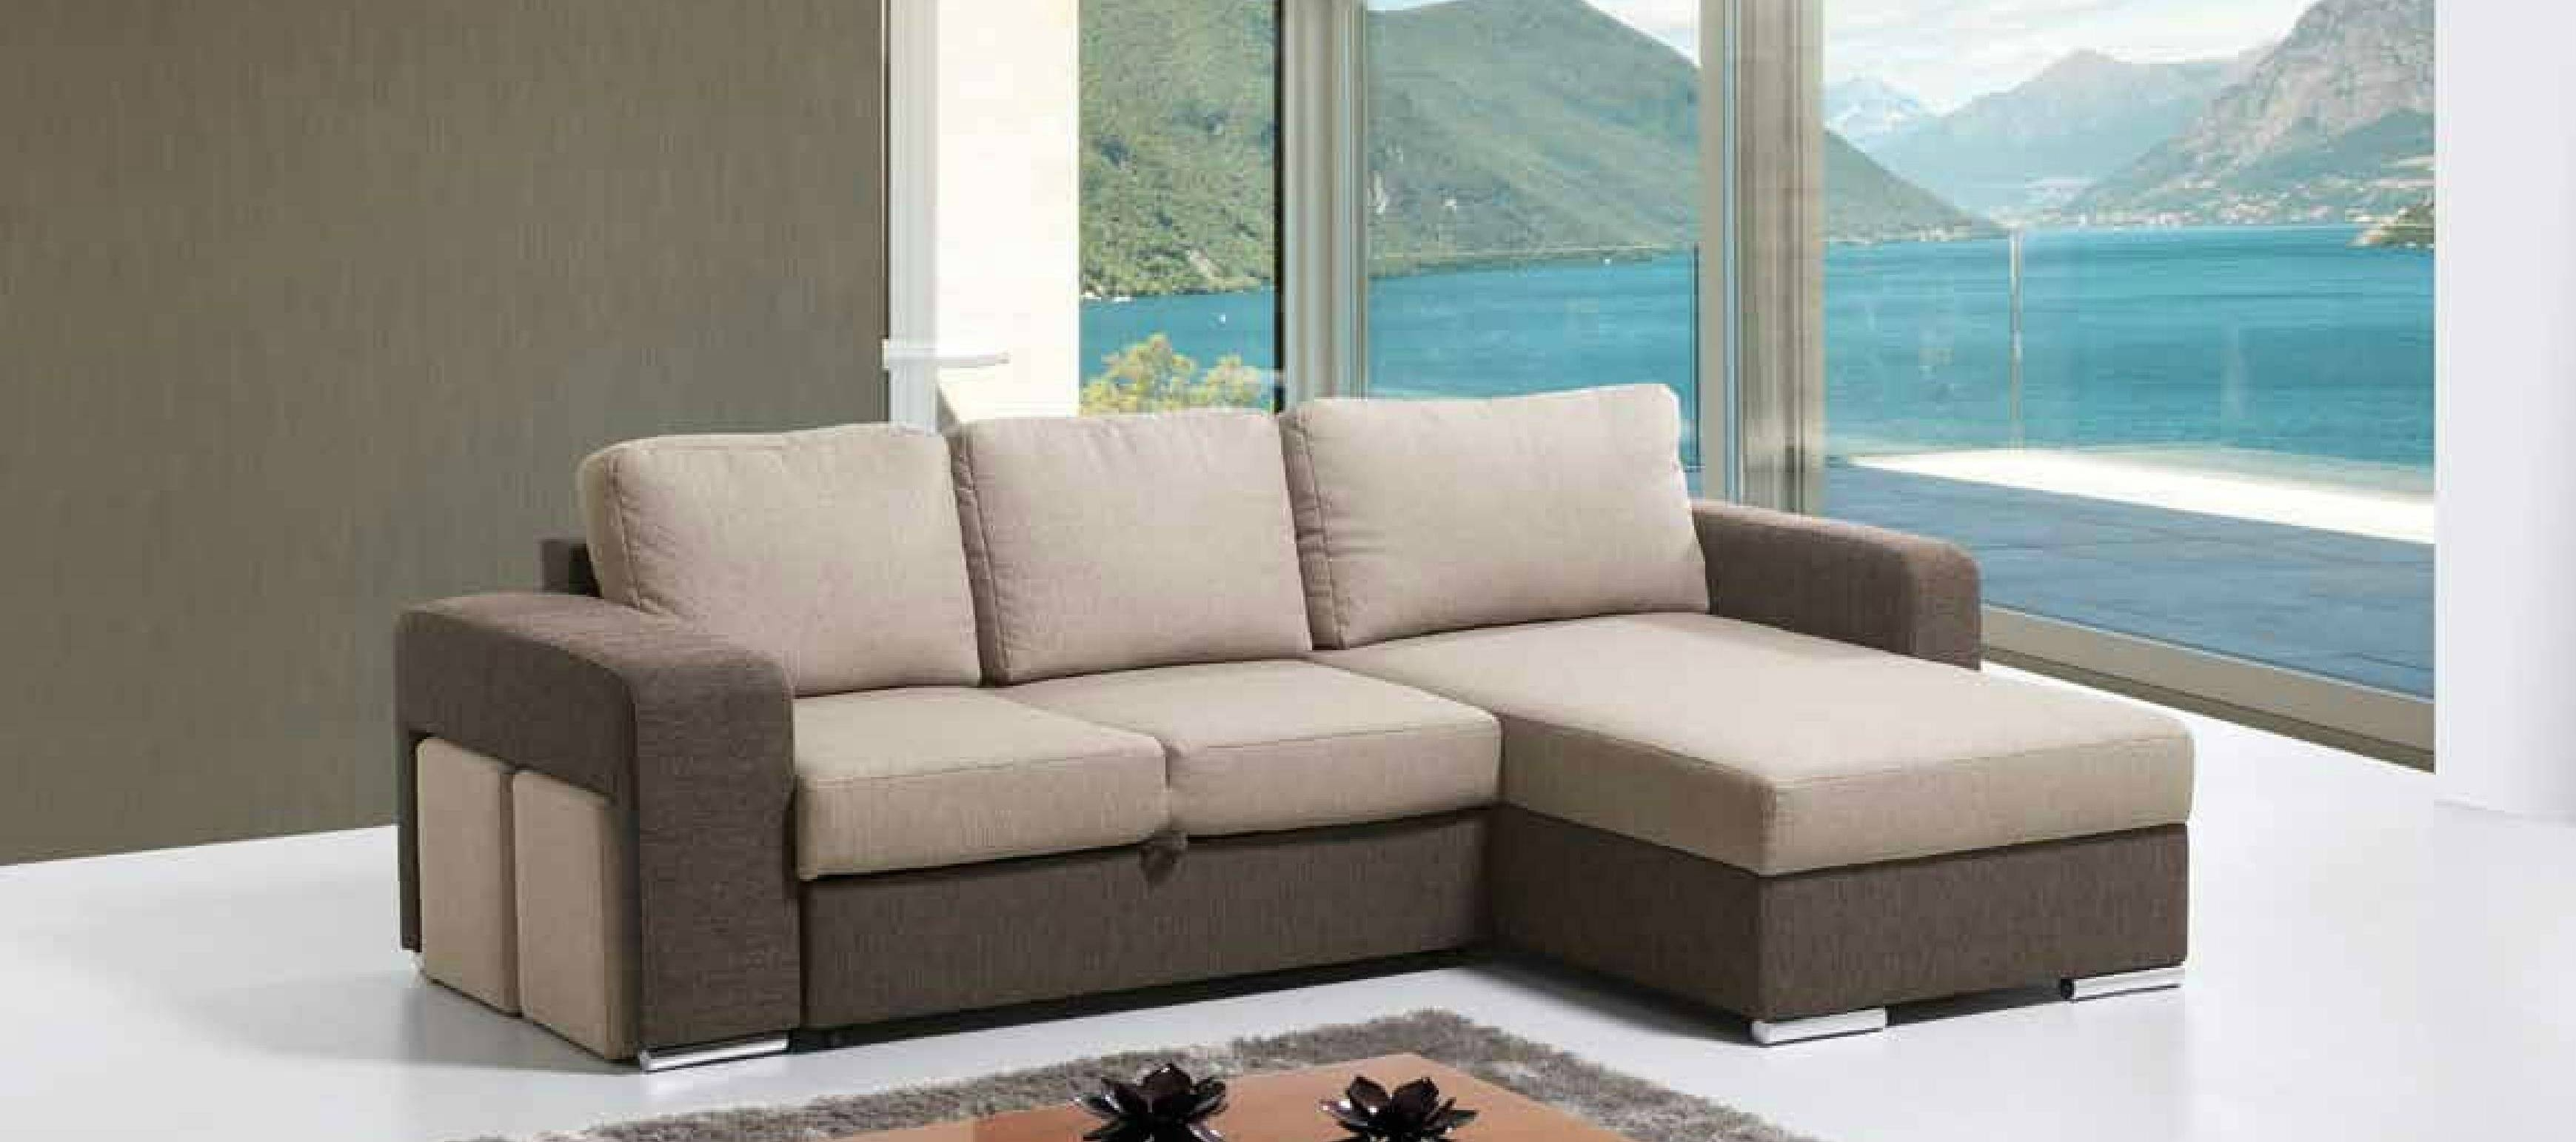 Sofás Chaise Long – Mundo Do Sofá in Long Chaise Sofa (Image 21 of 25)